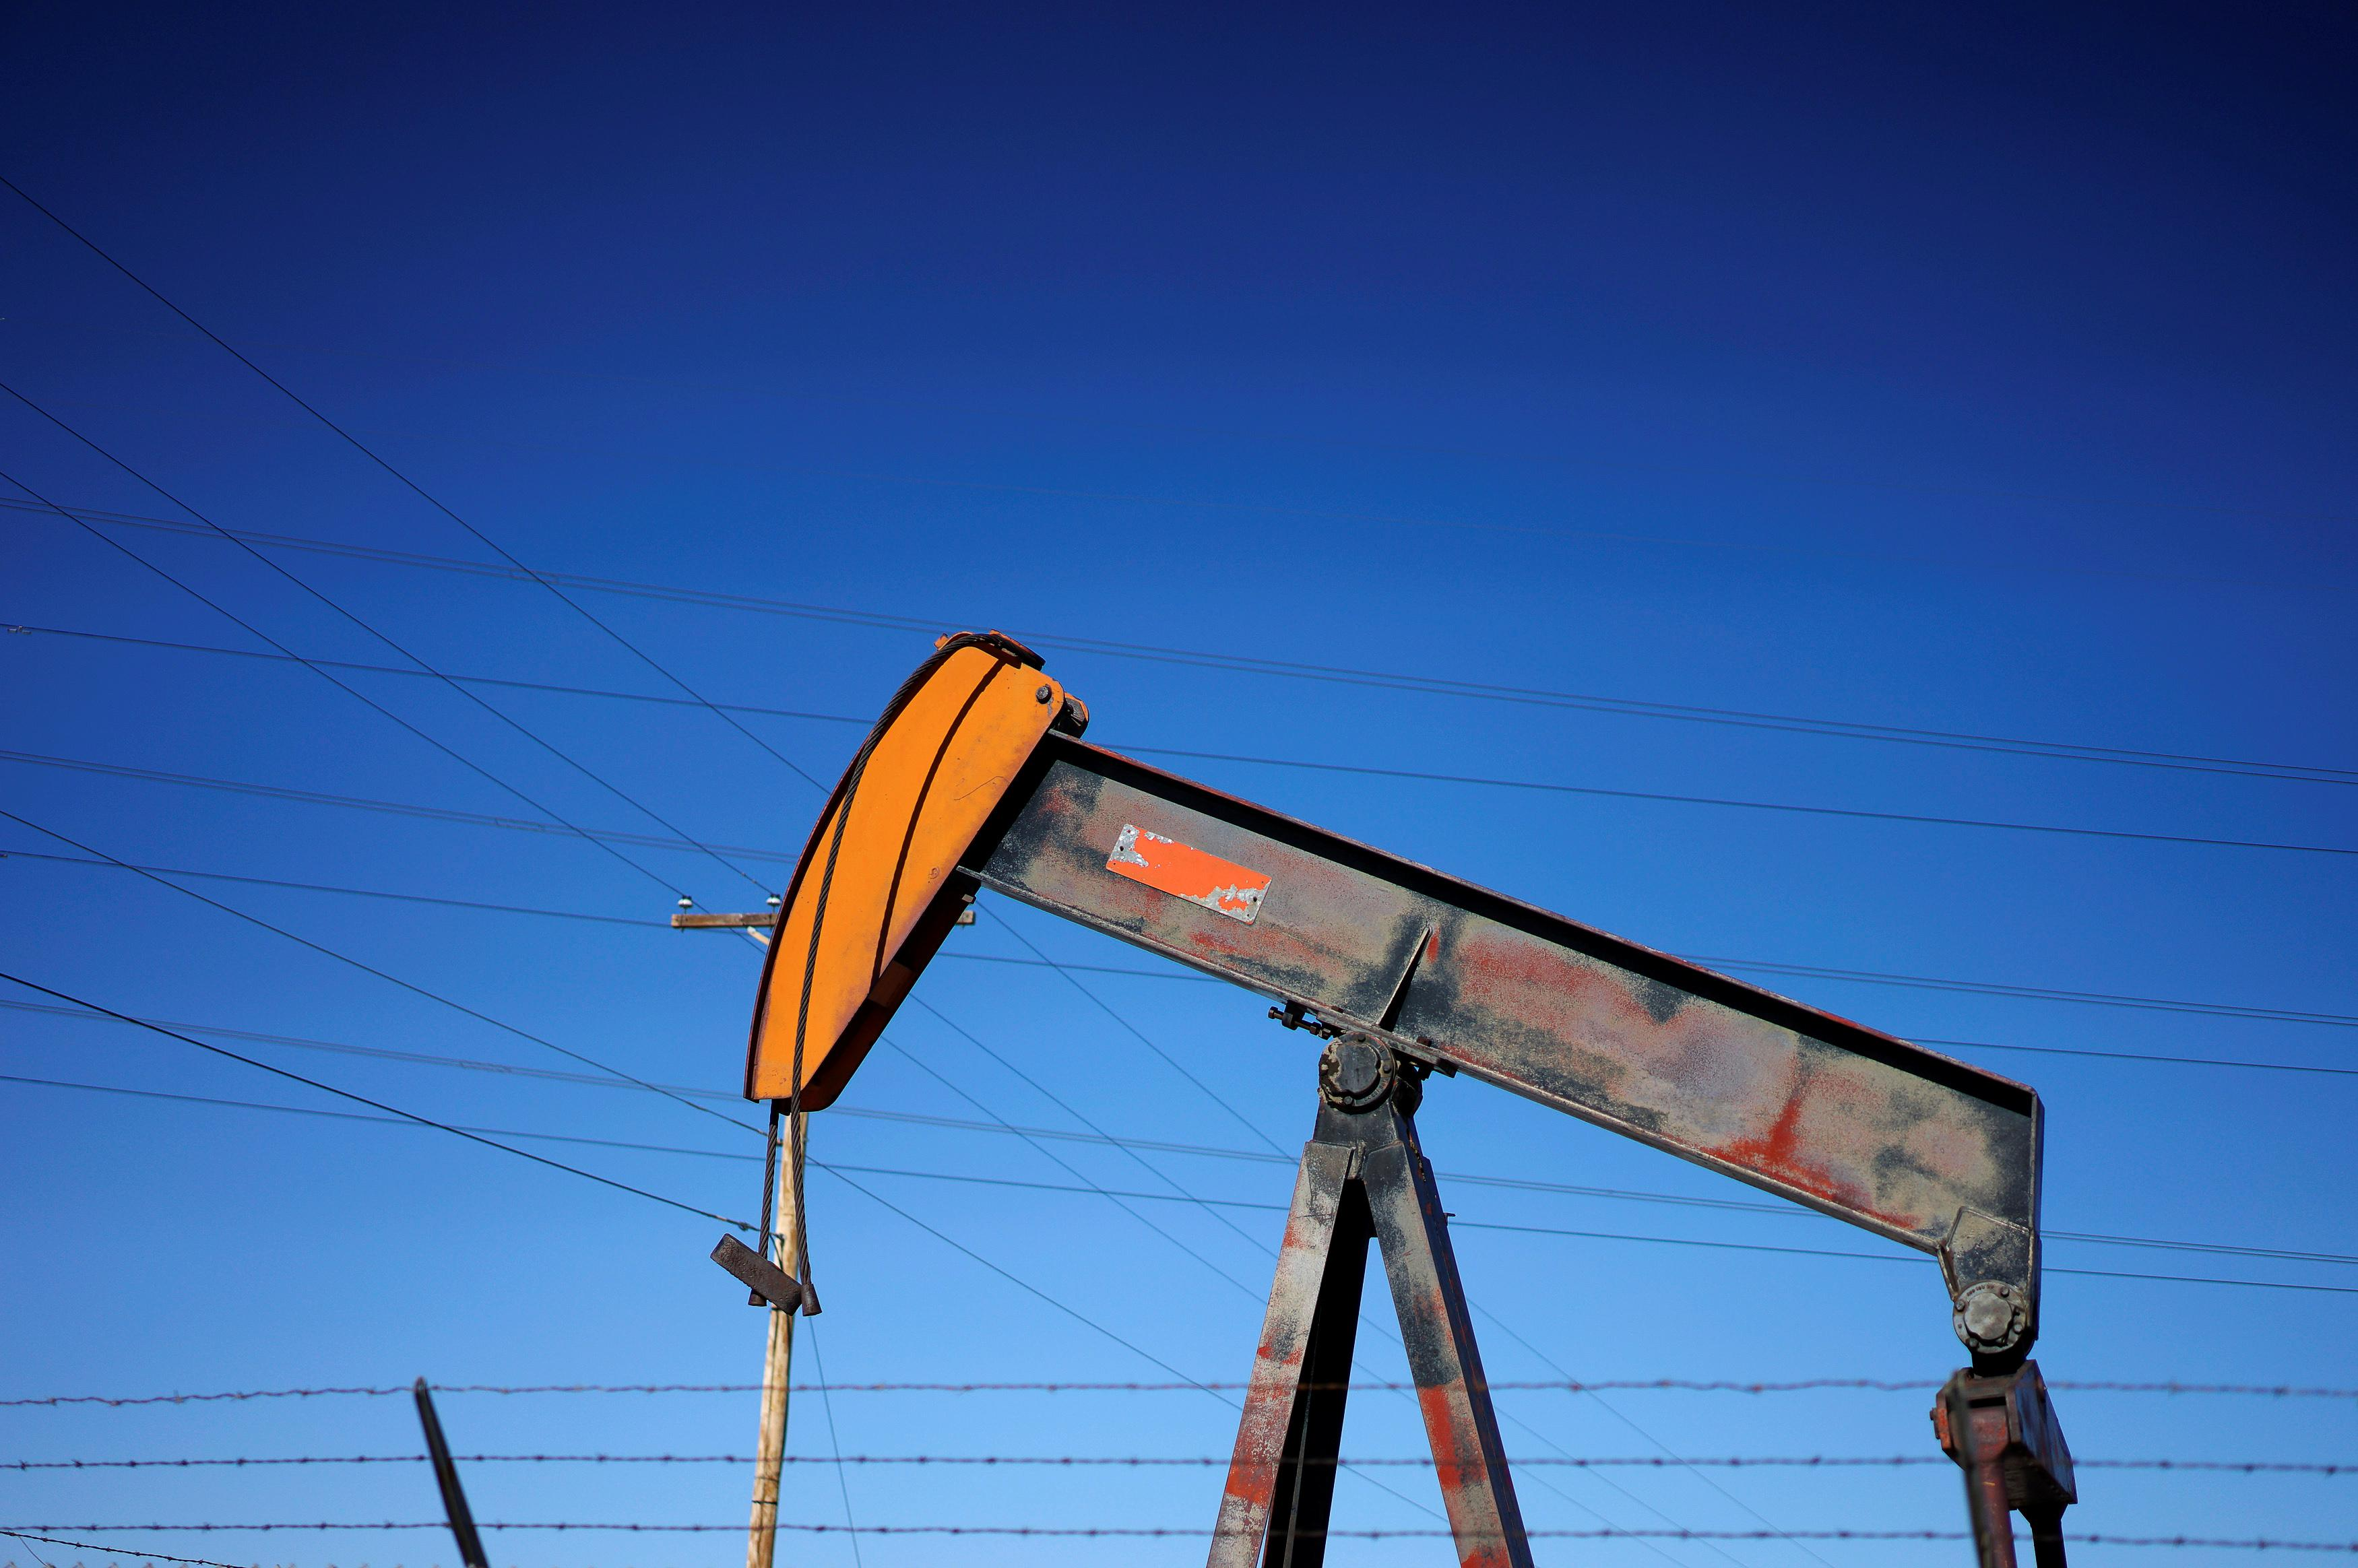 Oil up more than 1% on Mideast tensions and supply cuts